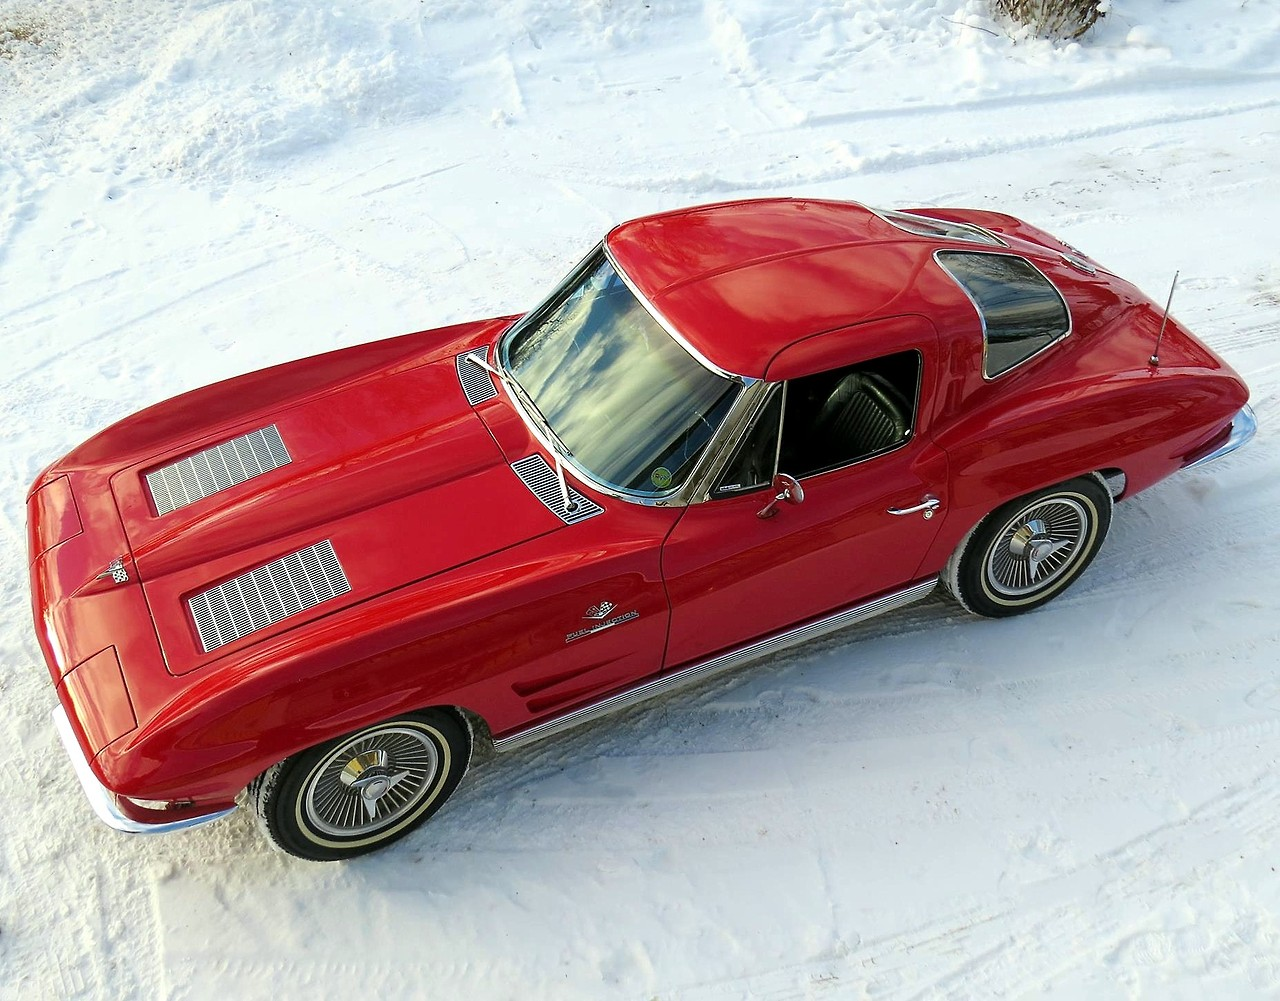 [GALLERY] Midyear Monday (30 Corvette photos)